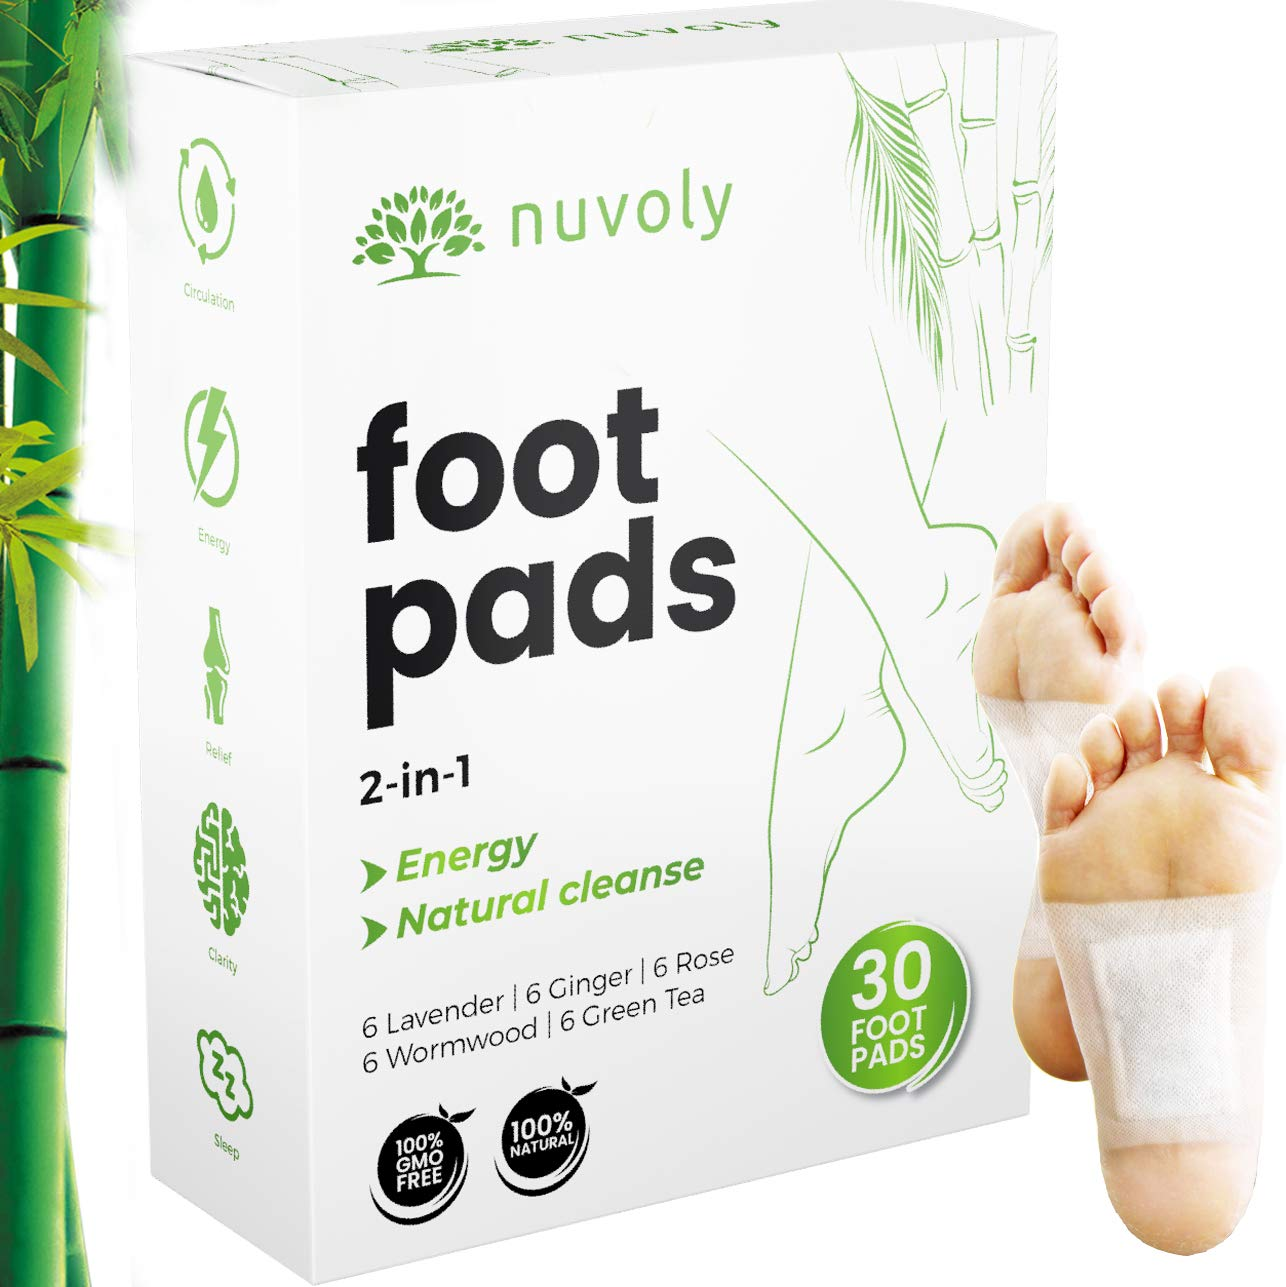 Foot Pads, 30 Pack, All Natural and Organic Formula, Upgraded 2 in 1 Patches